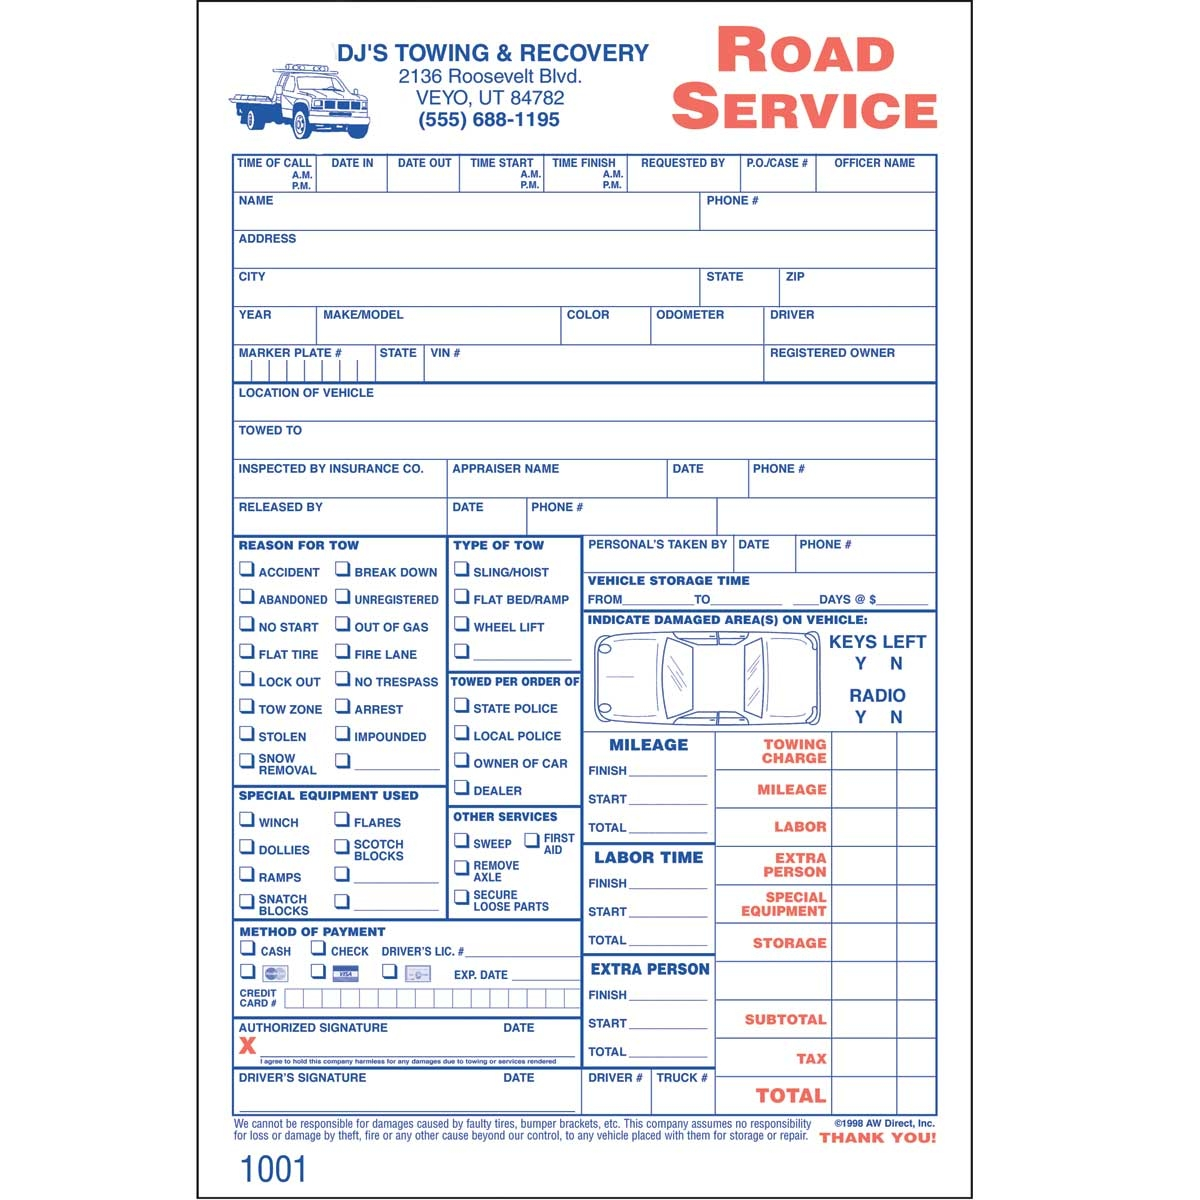 custom road service invoices 250 forms aw direct tow truck invoice